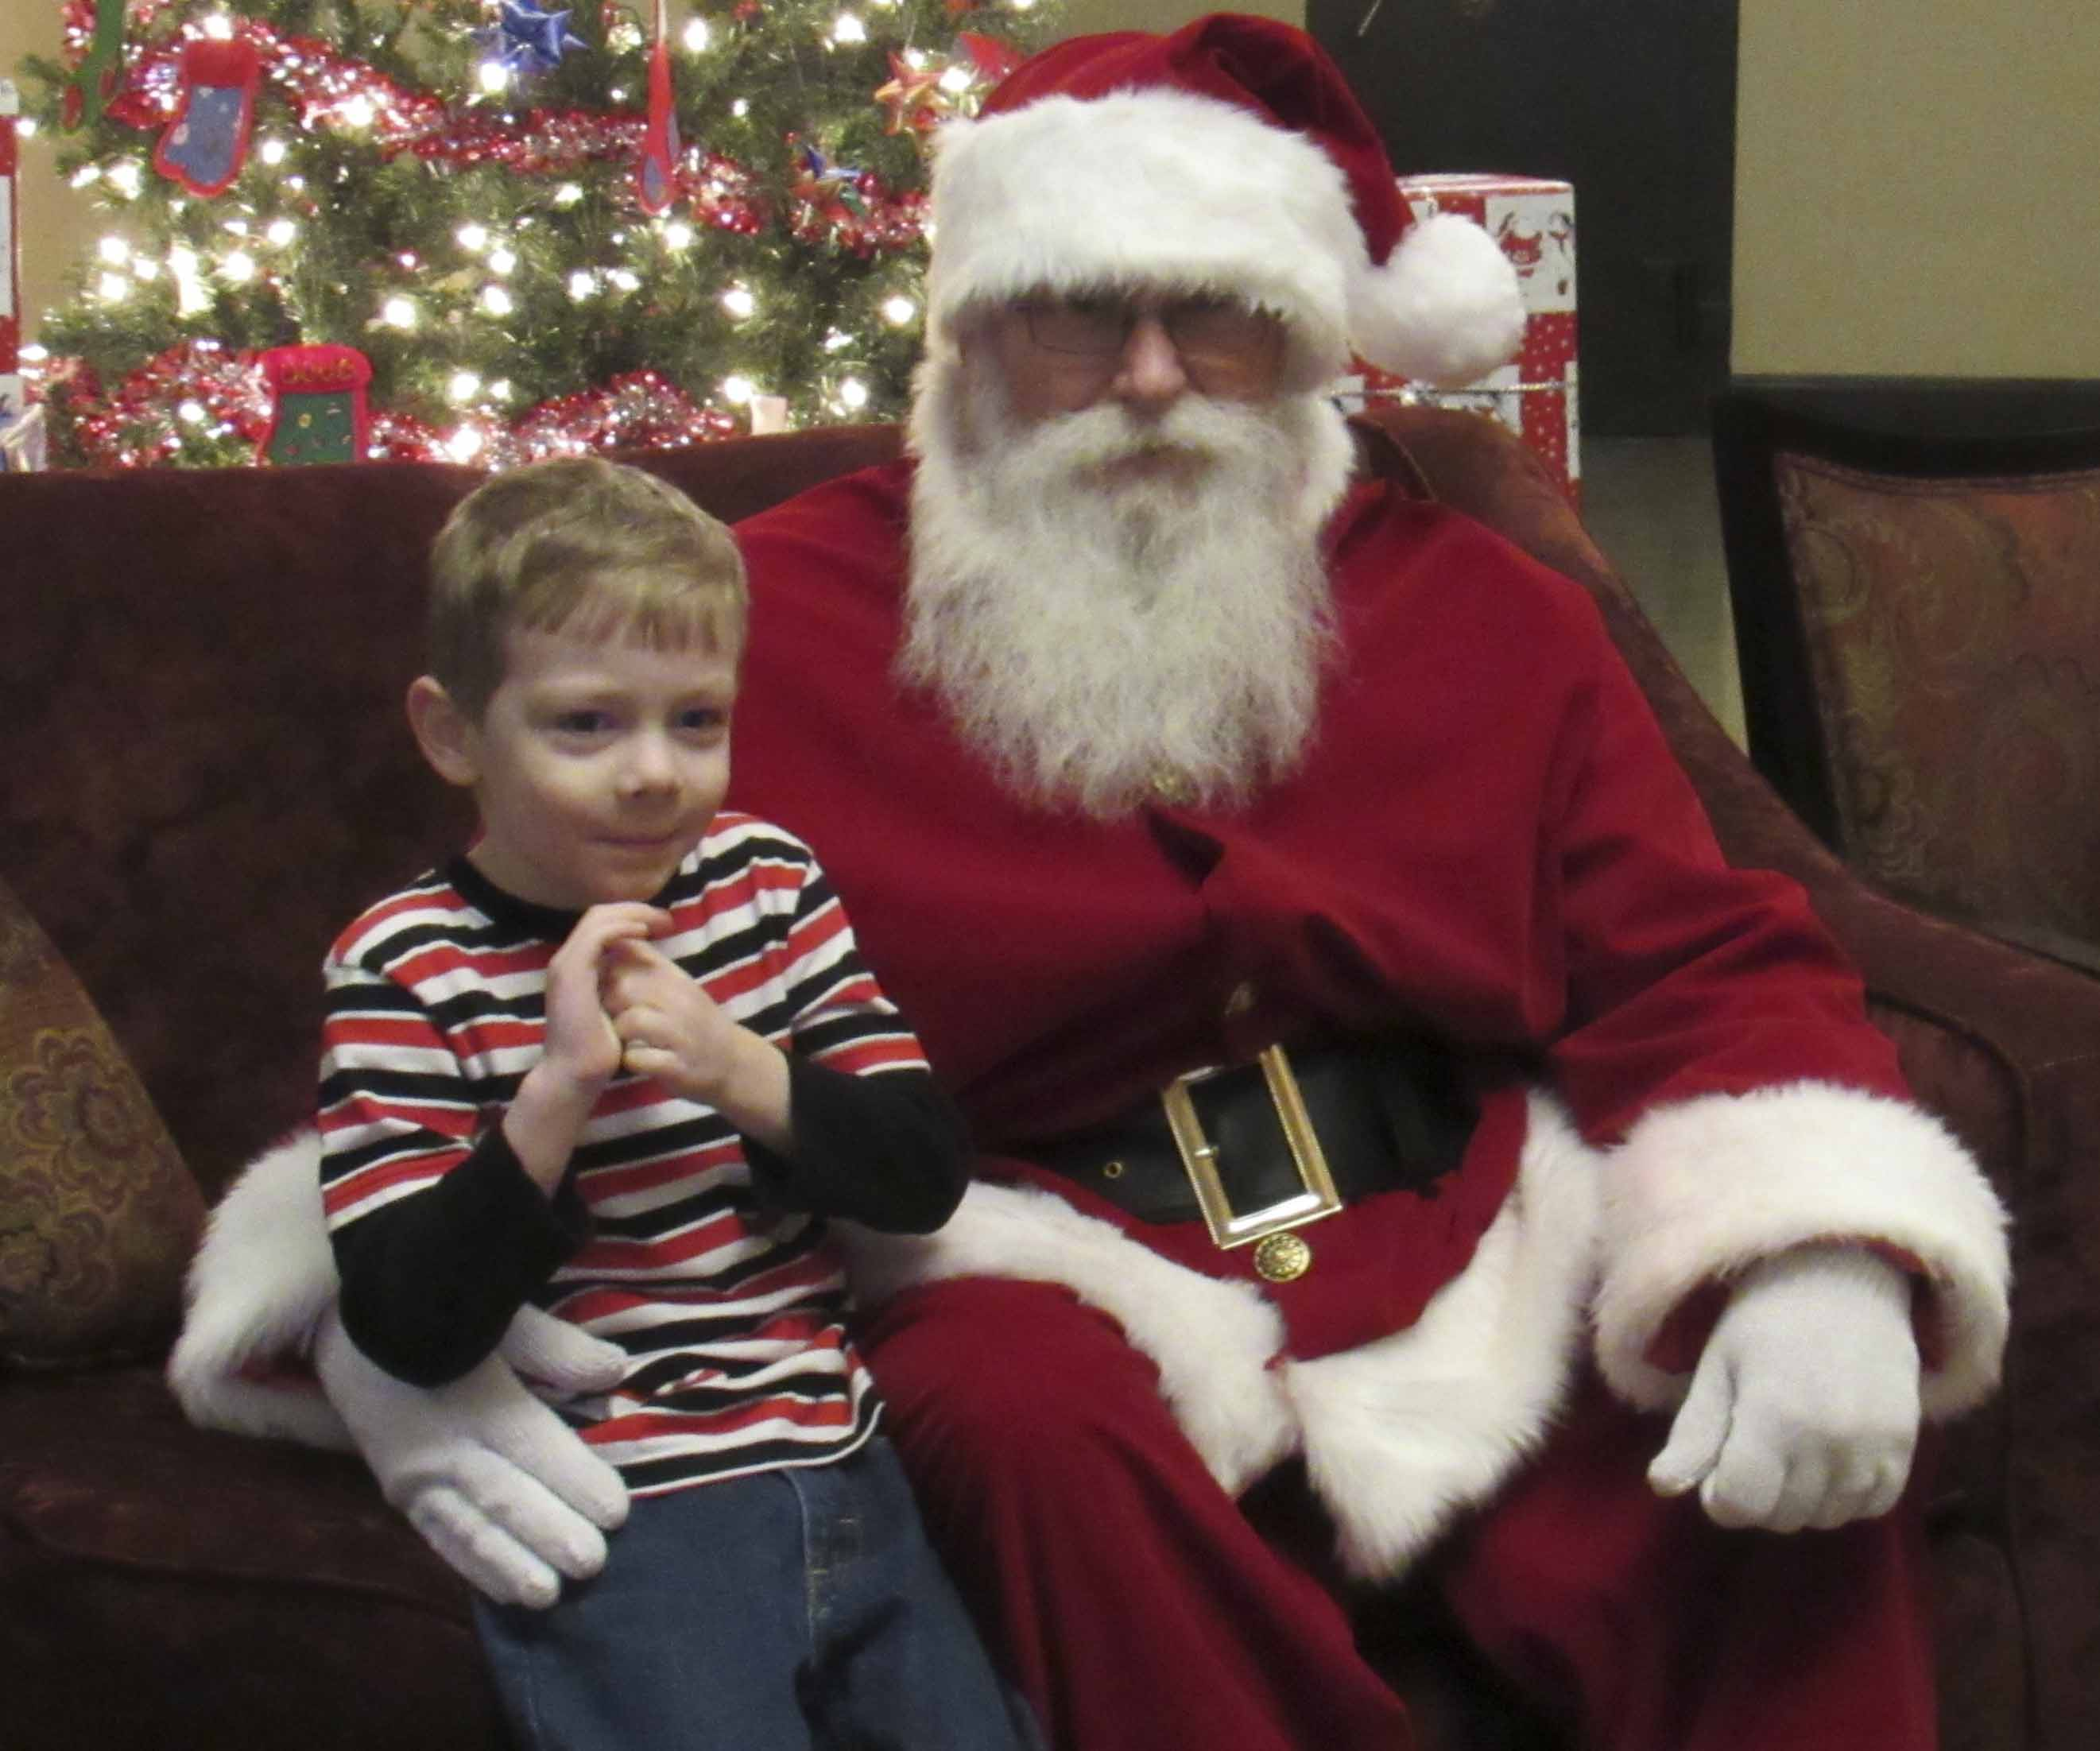 Austin Grant was excited to see Santa Saturday. The two spent much time talking about what Austin wants for Christmas, as well as what Austin's mom wanted for Christmas.